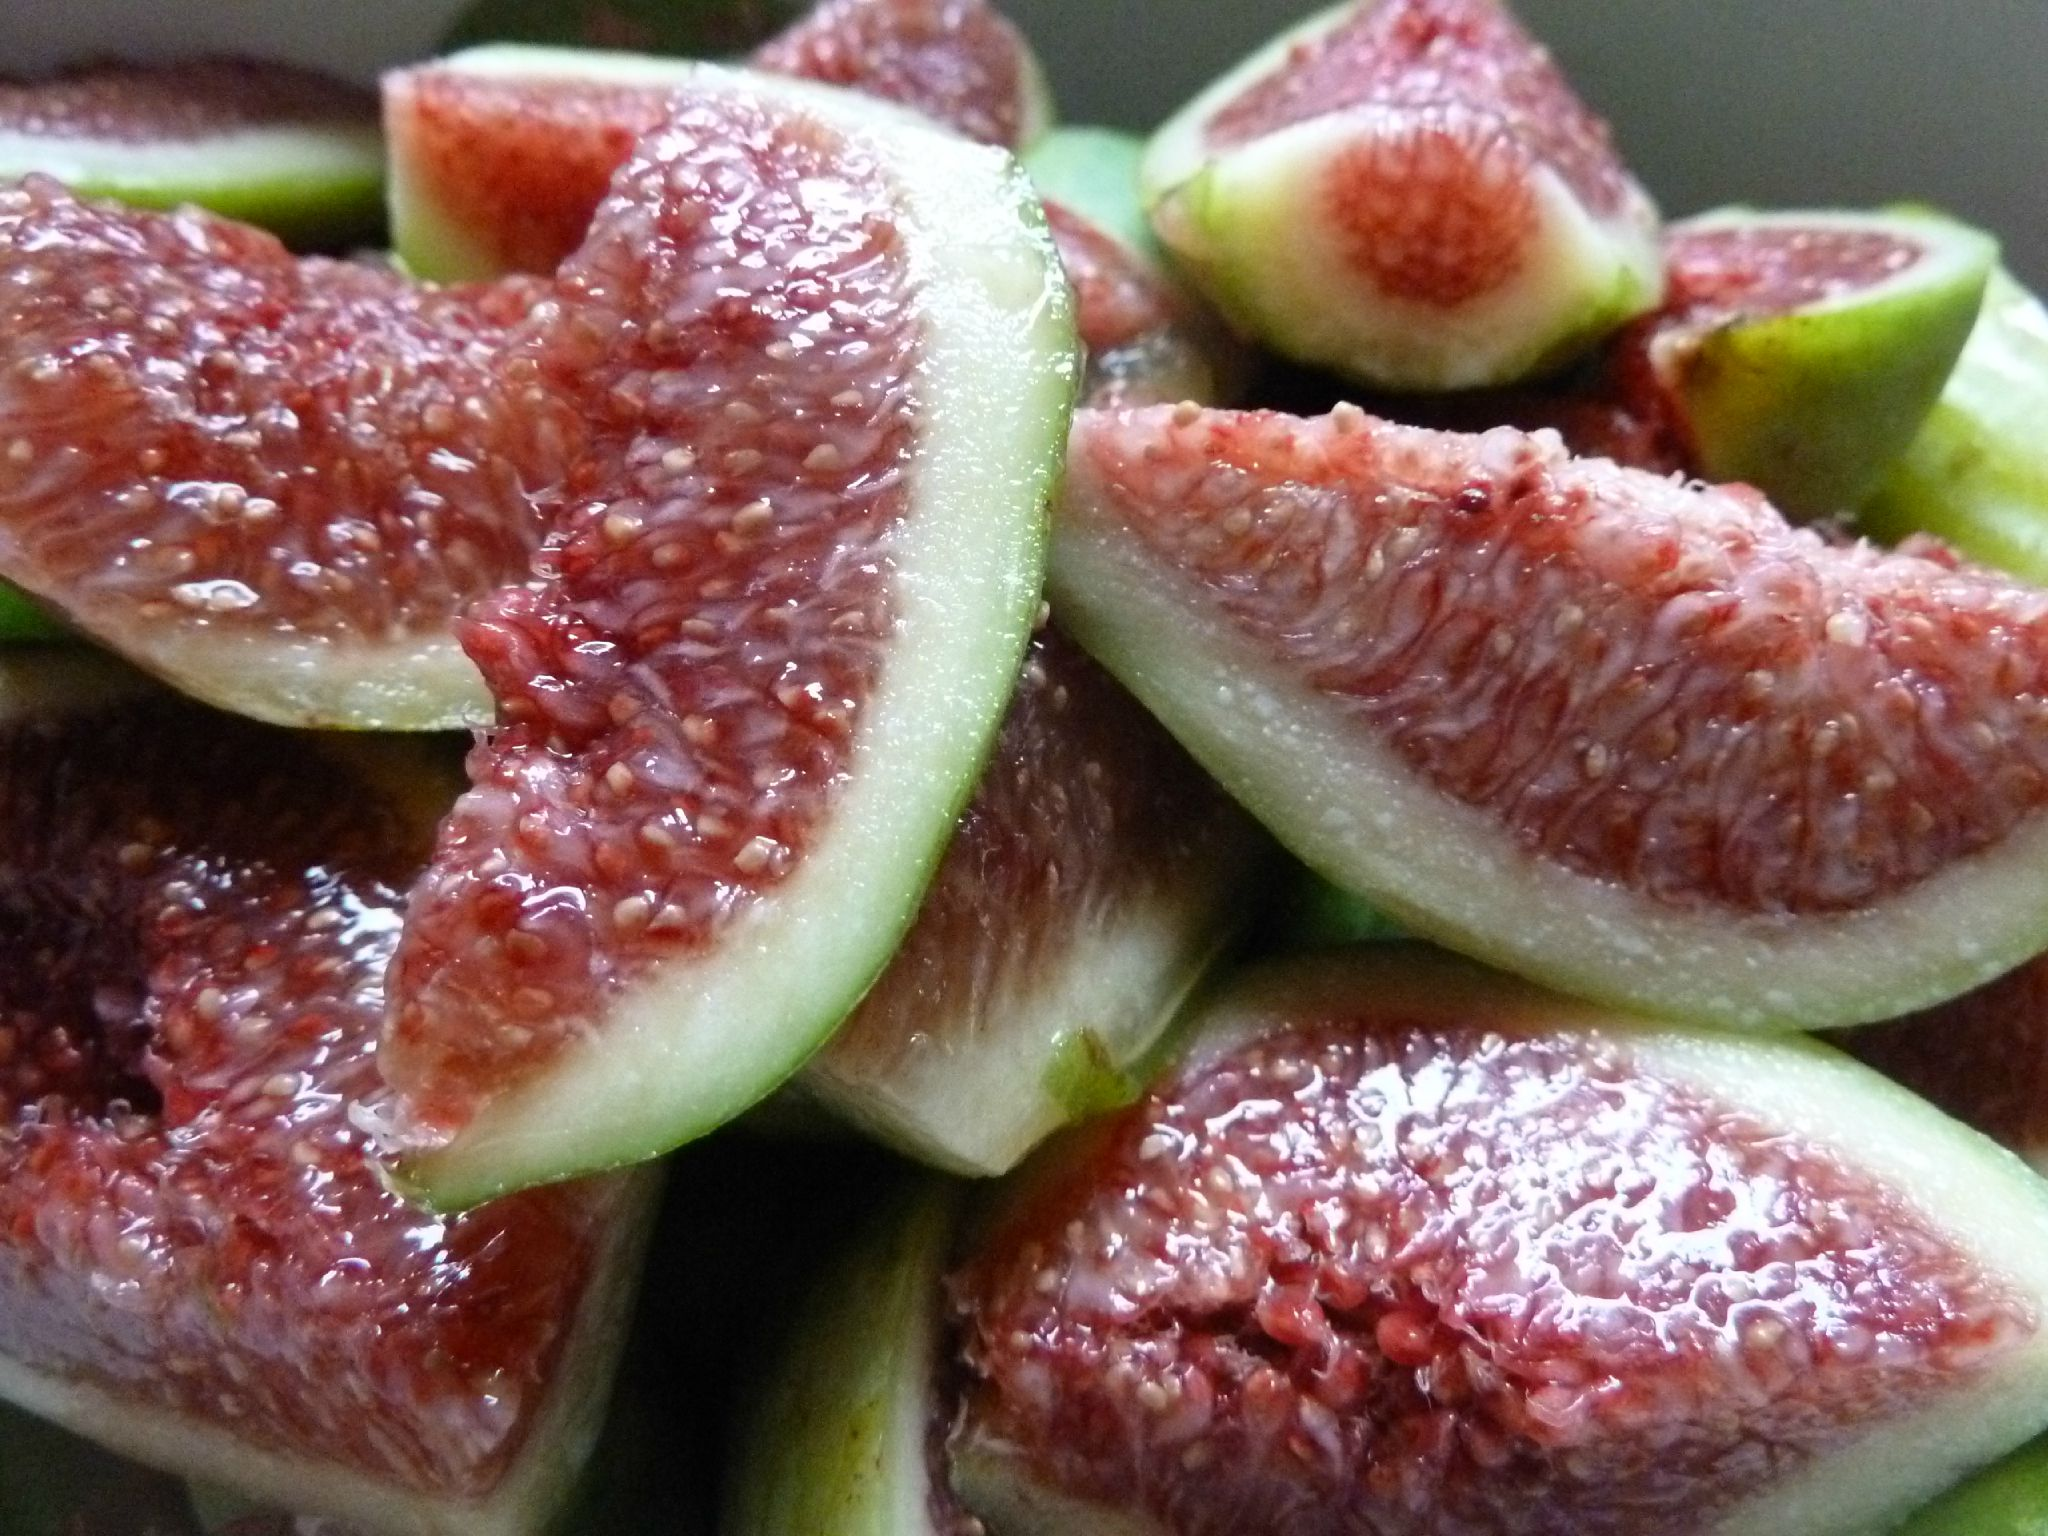 figues - www.passionpotager.canalblog.com